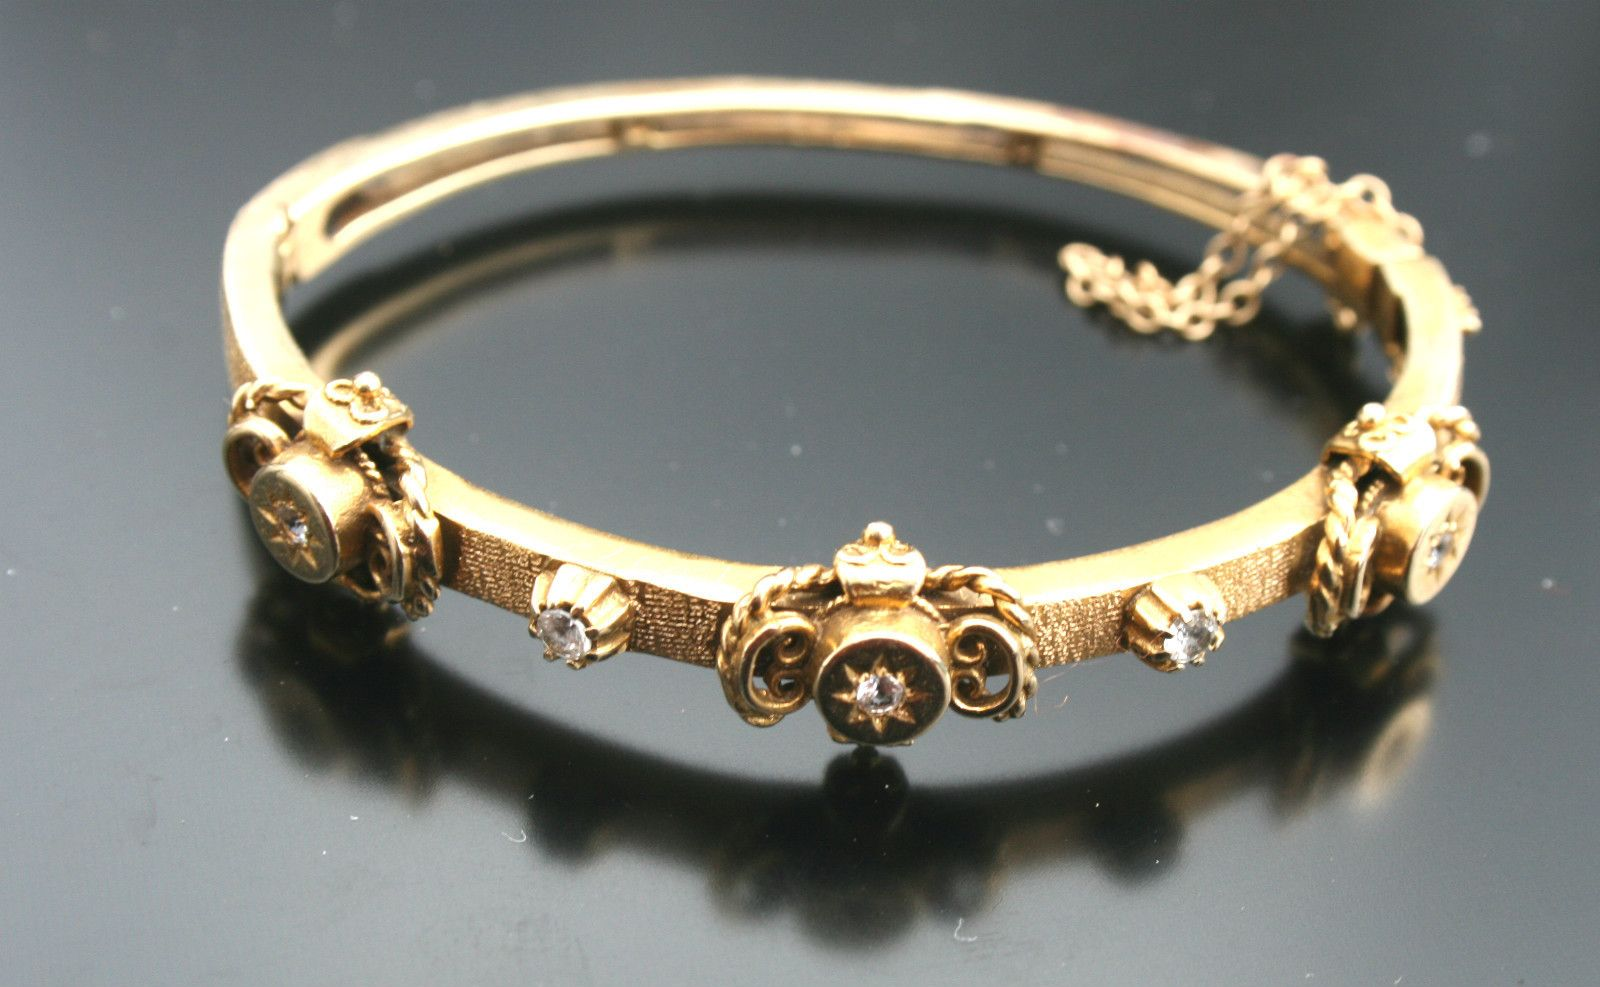 gold bracelets bangles bangle solid bracelet ecuatwitt day k